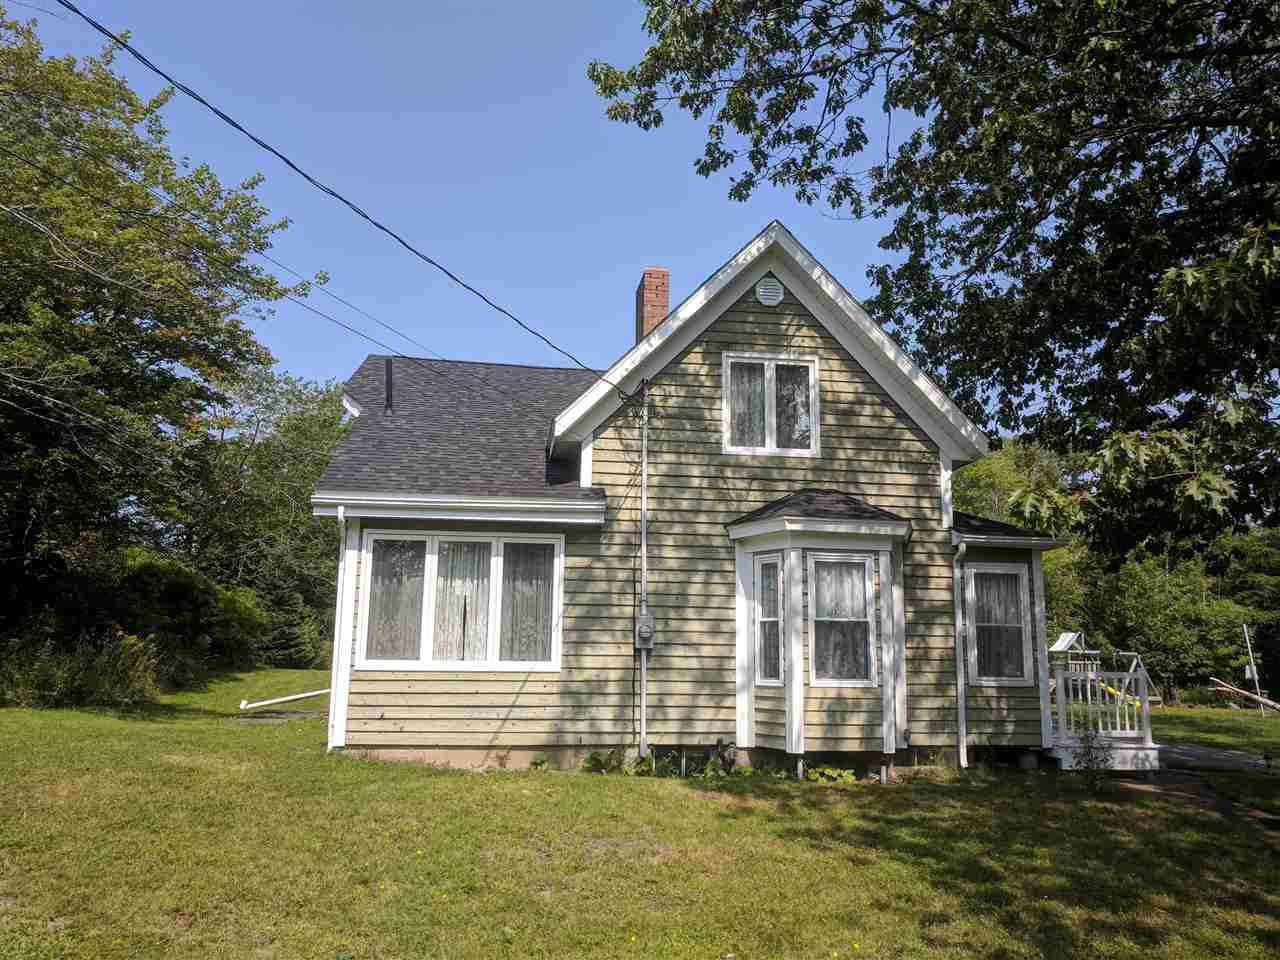 Main Photo: 265 Munroe Ext Avenue in Westville Road: 108-Rural Pictou County Residential for sale (Northern Region)  : MLS®# 201821511